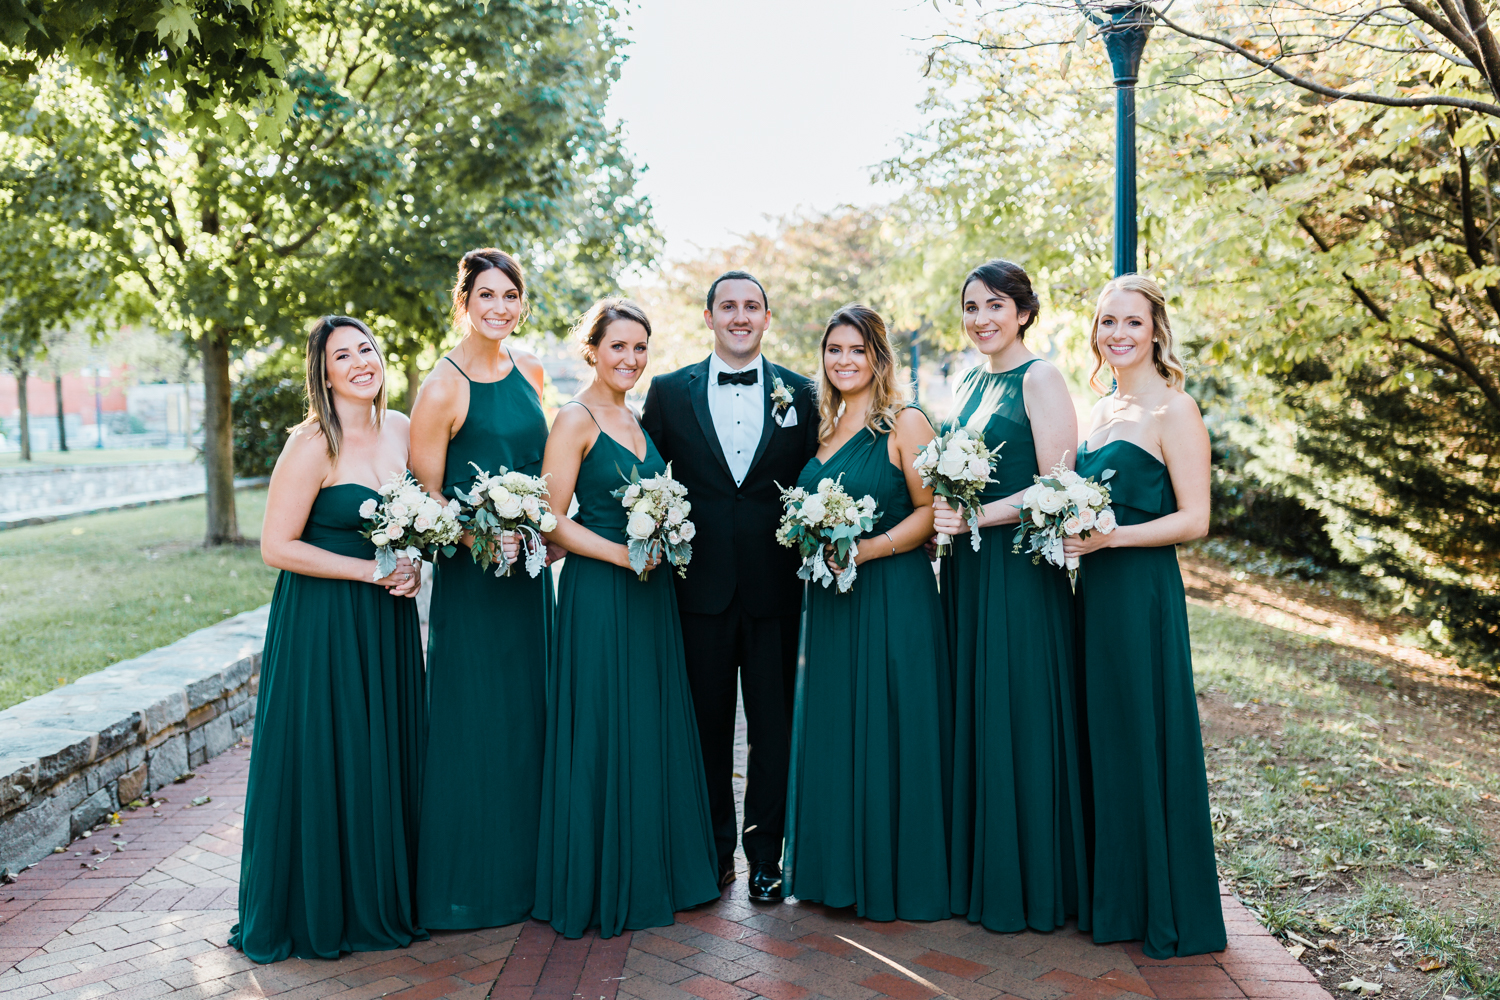 photo ideas for groom with bridesmaids - Maryland wedding photographer and cinematographer